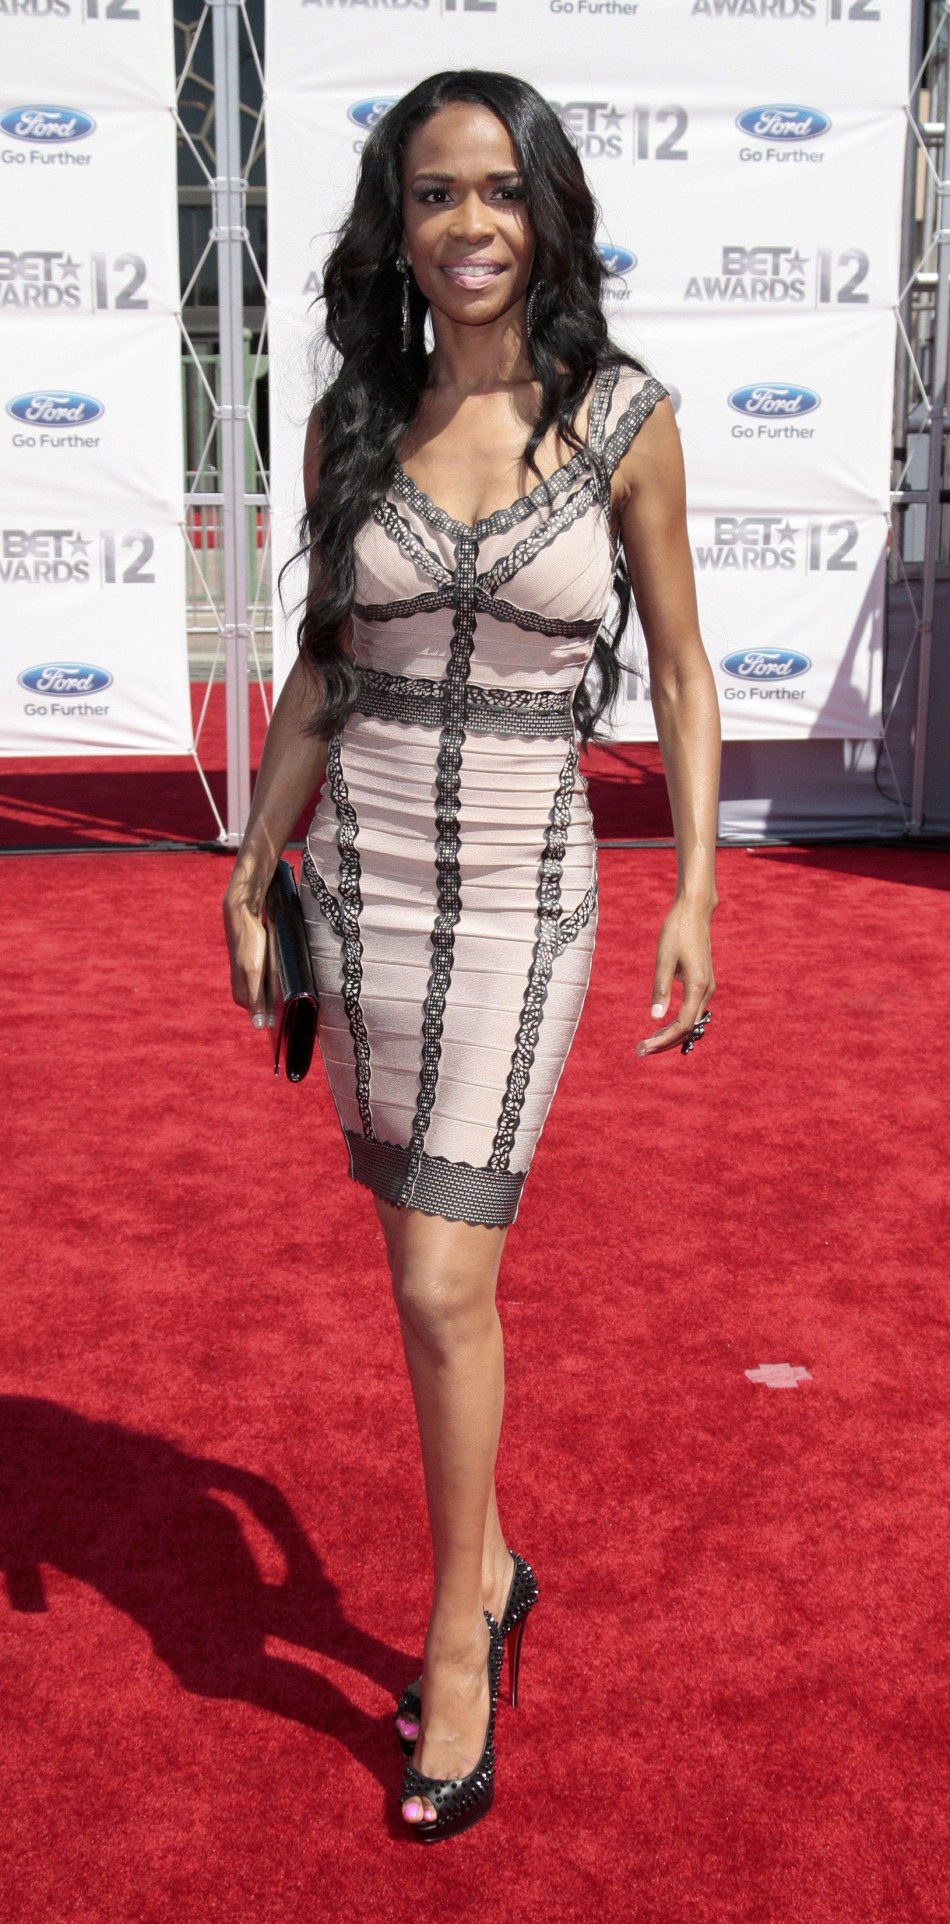 Singer Michelle Williams arrives at the 2012 BET Awards in Los Angeles